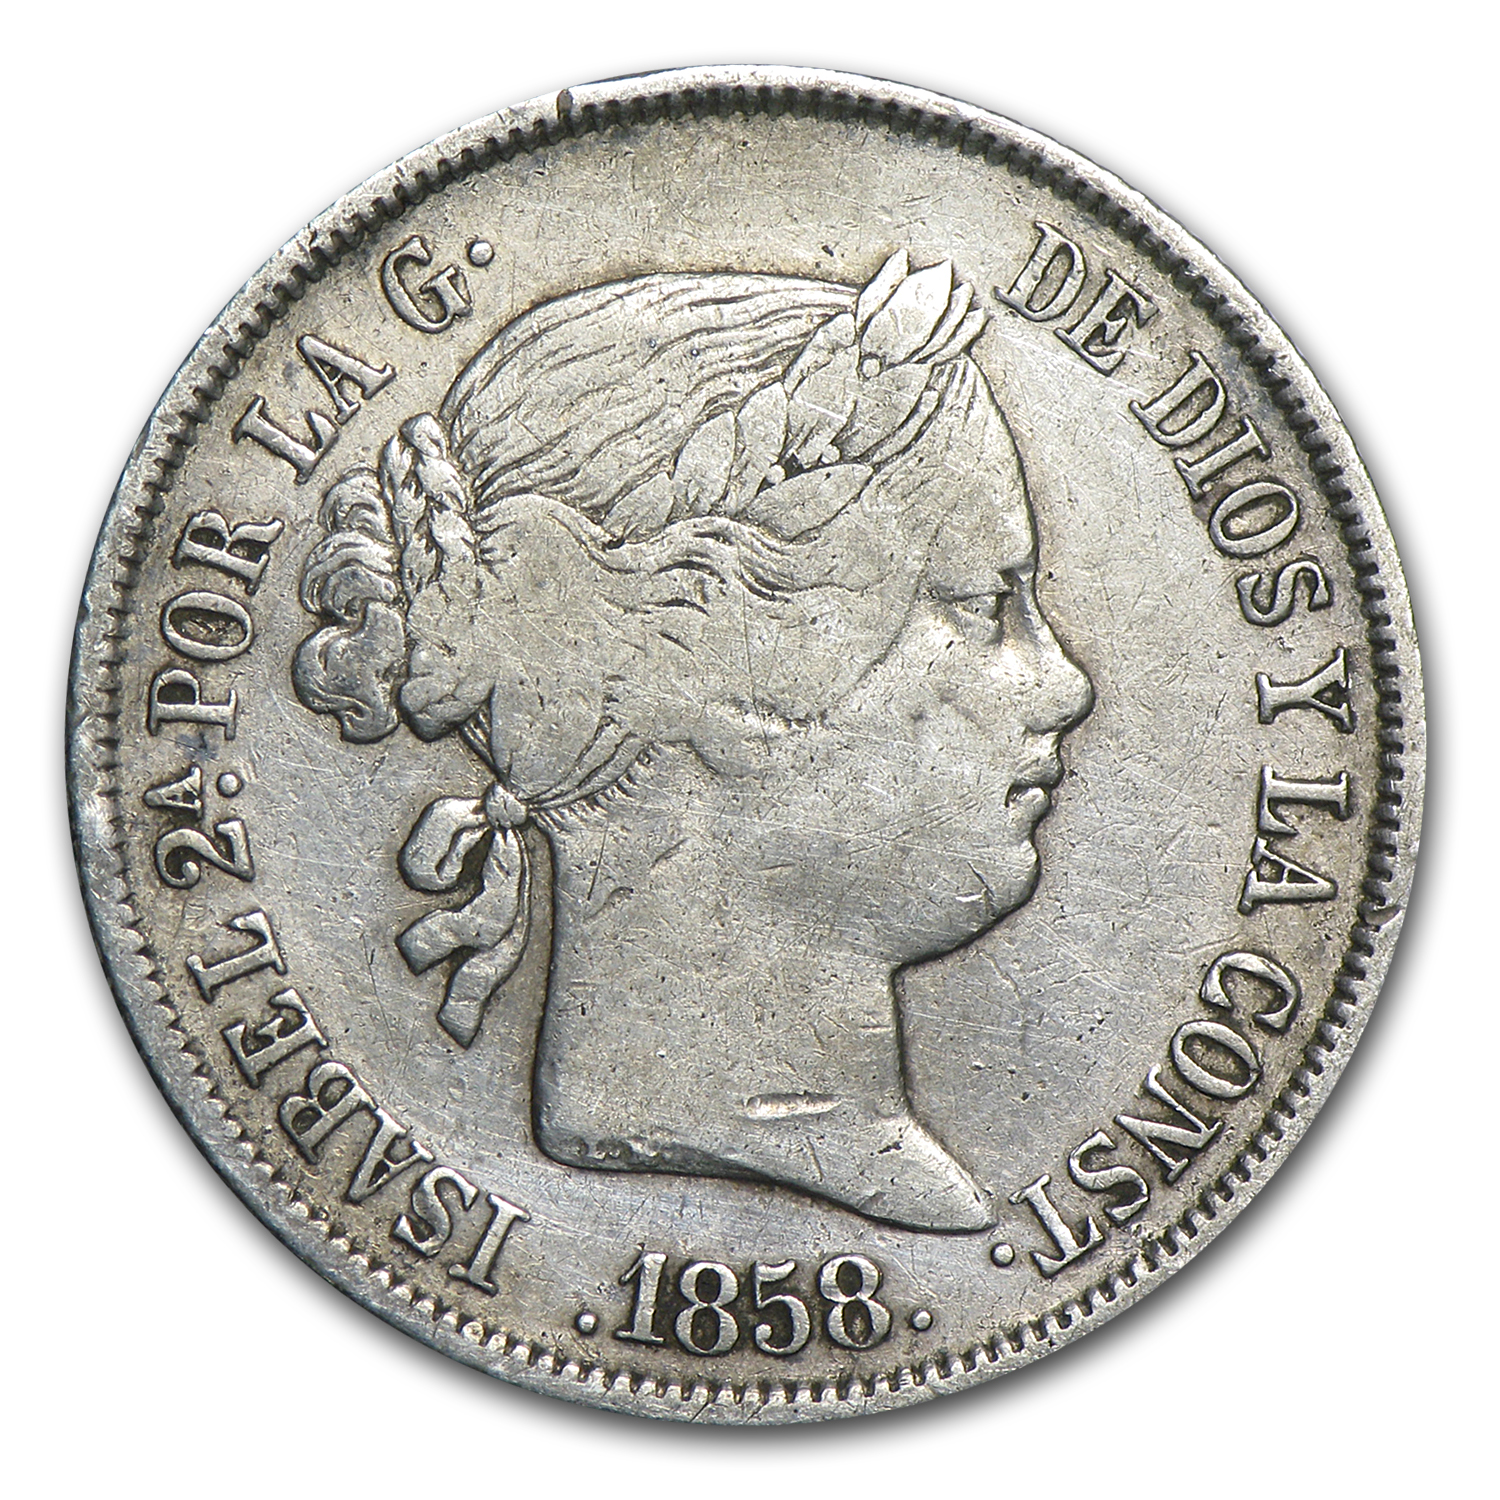 Spain 1858 Silver 4 Reales Isabel II VF